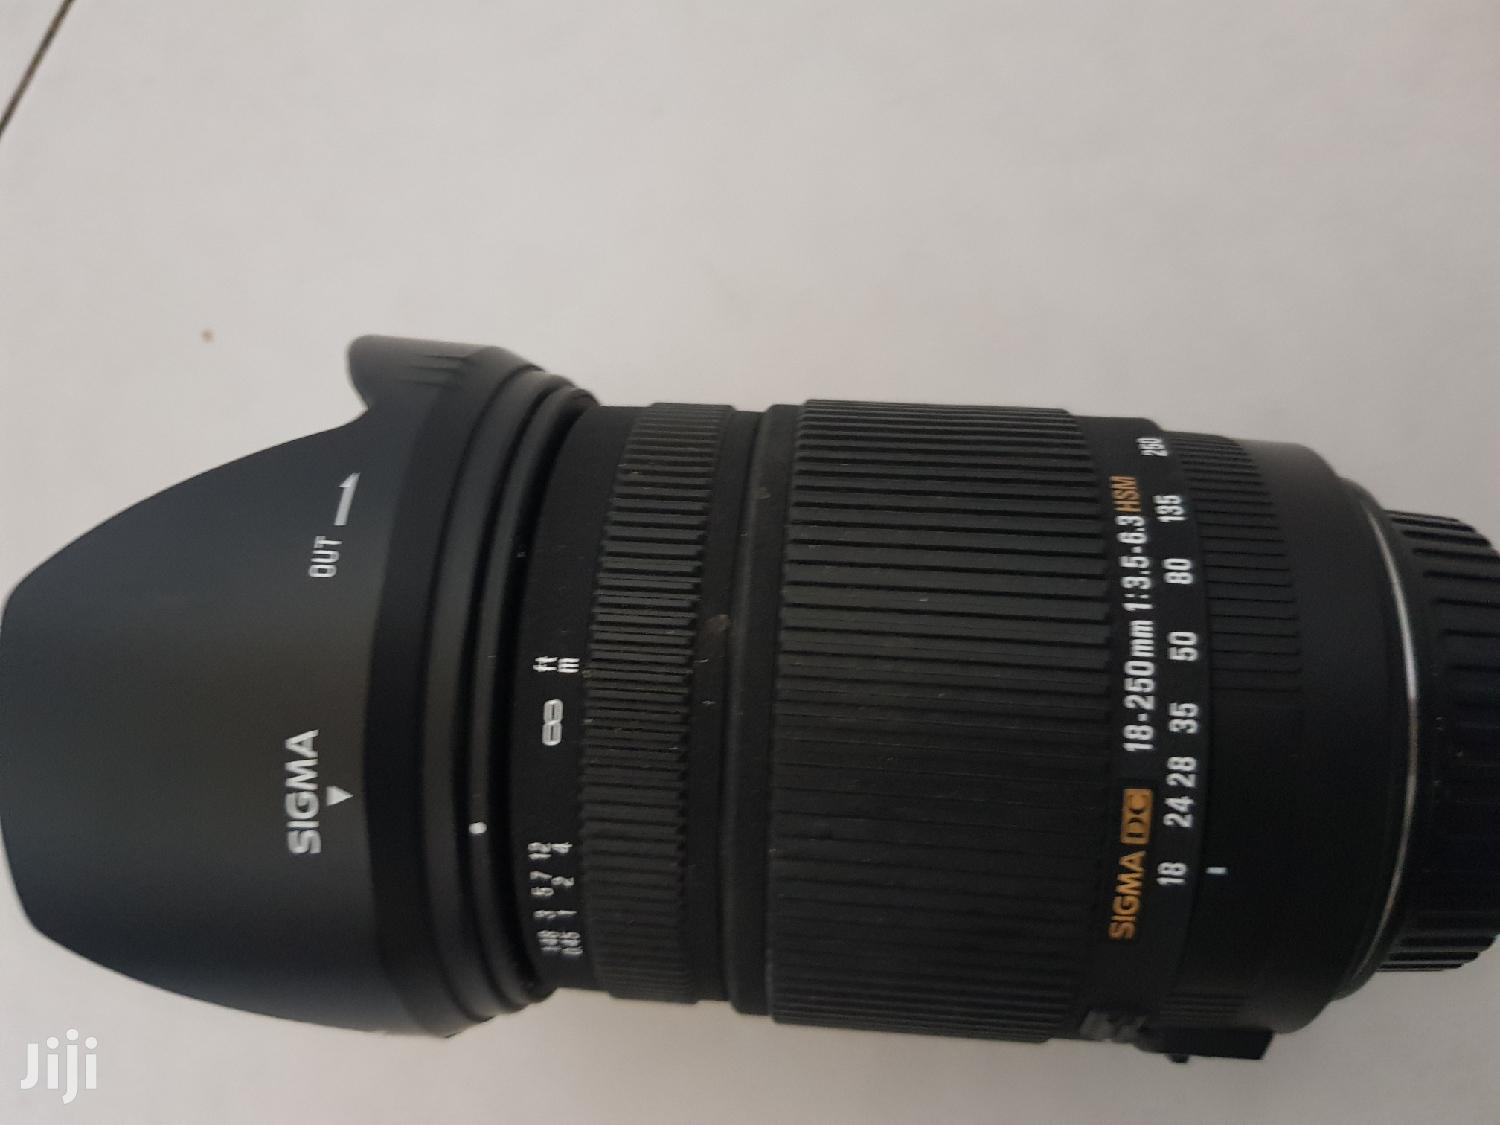 Sigma 18-250mm DC Hsm OS Lens | Accessories & Supplies for Electronics for sale in East Legon, Greater Accra, Ghana